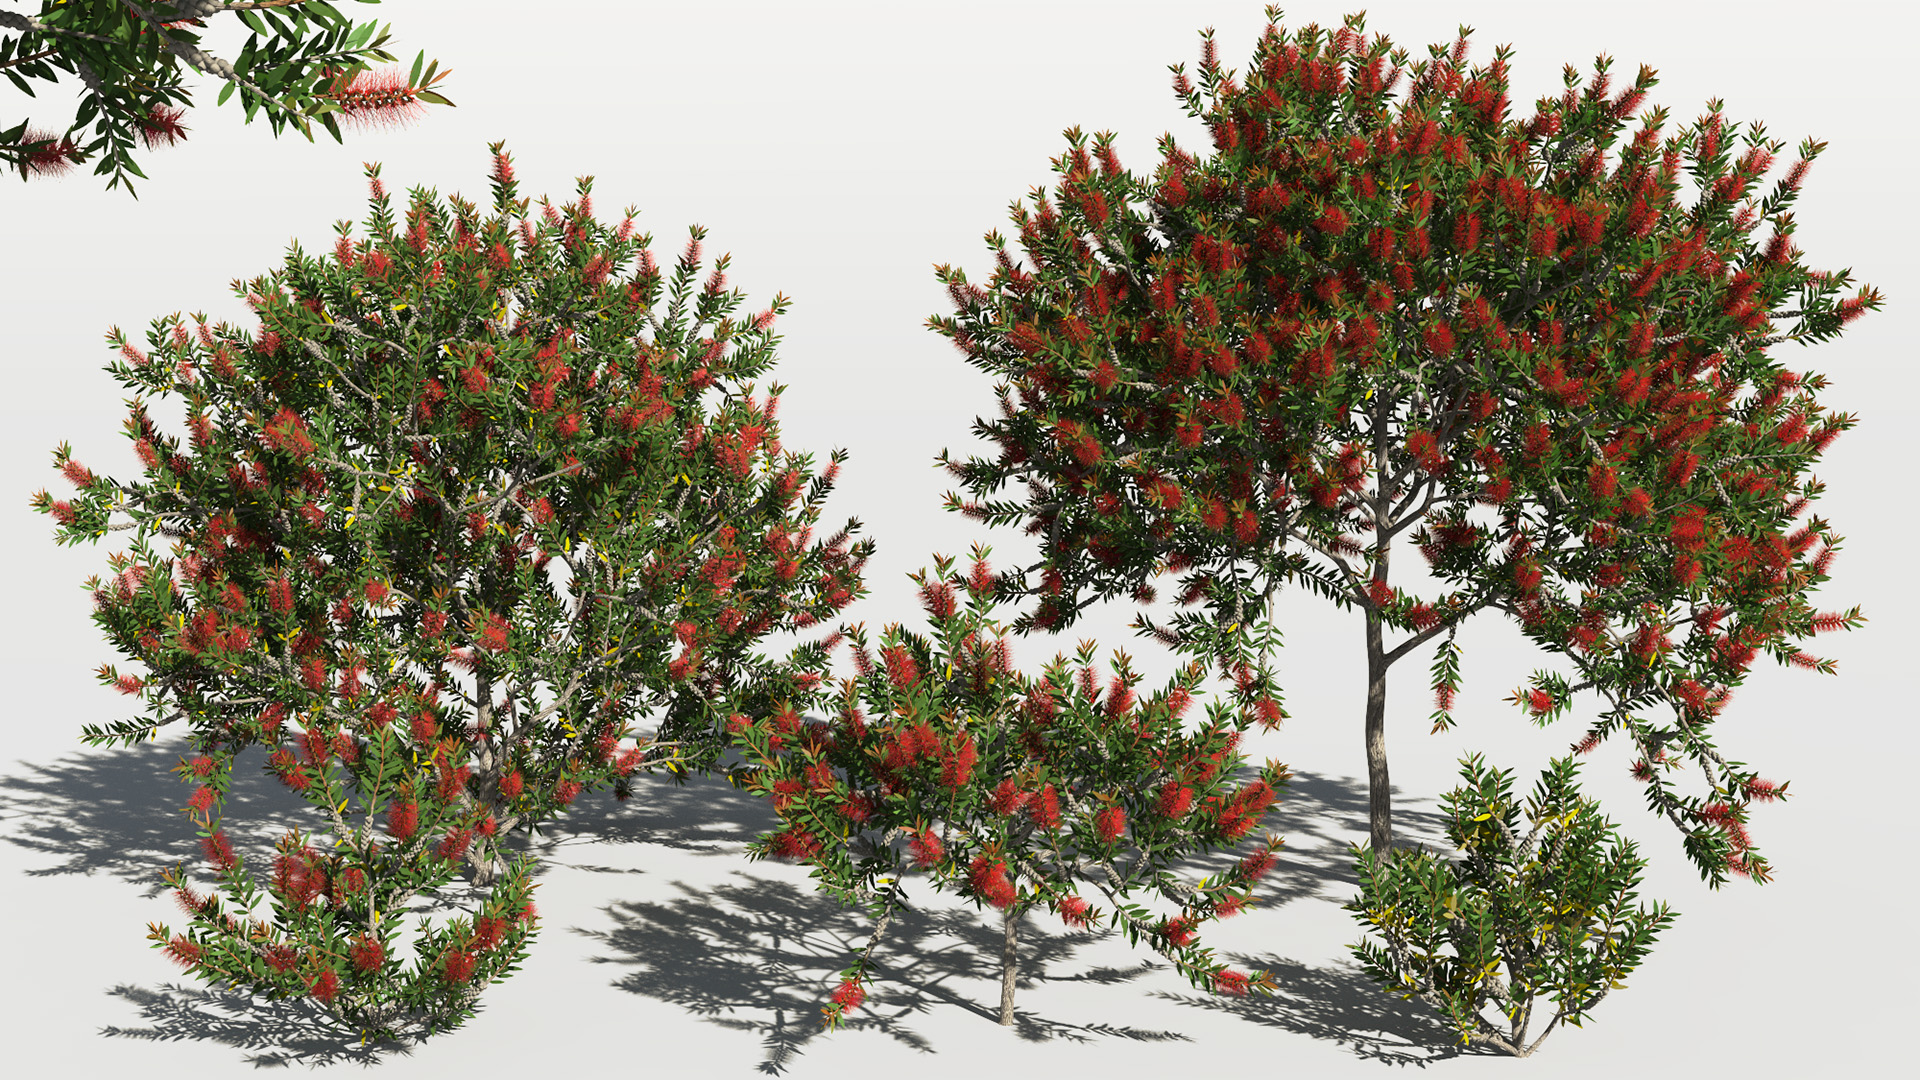 3D model of the Bottlebrush laevis Callistemon laevis different presets